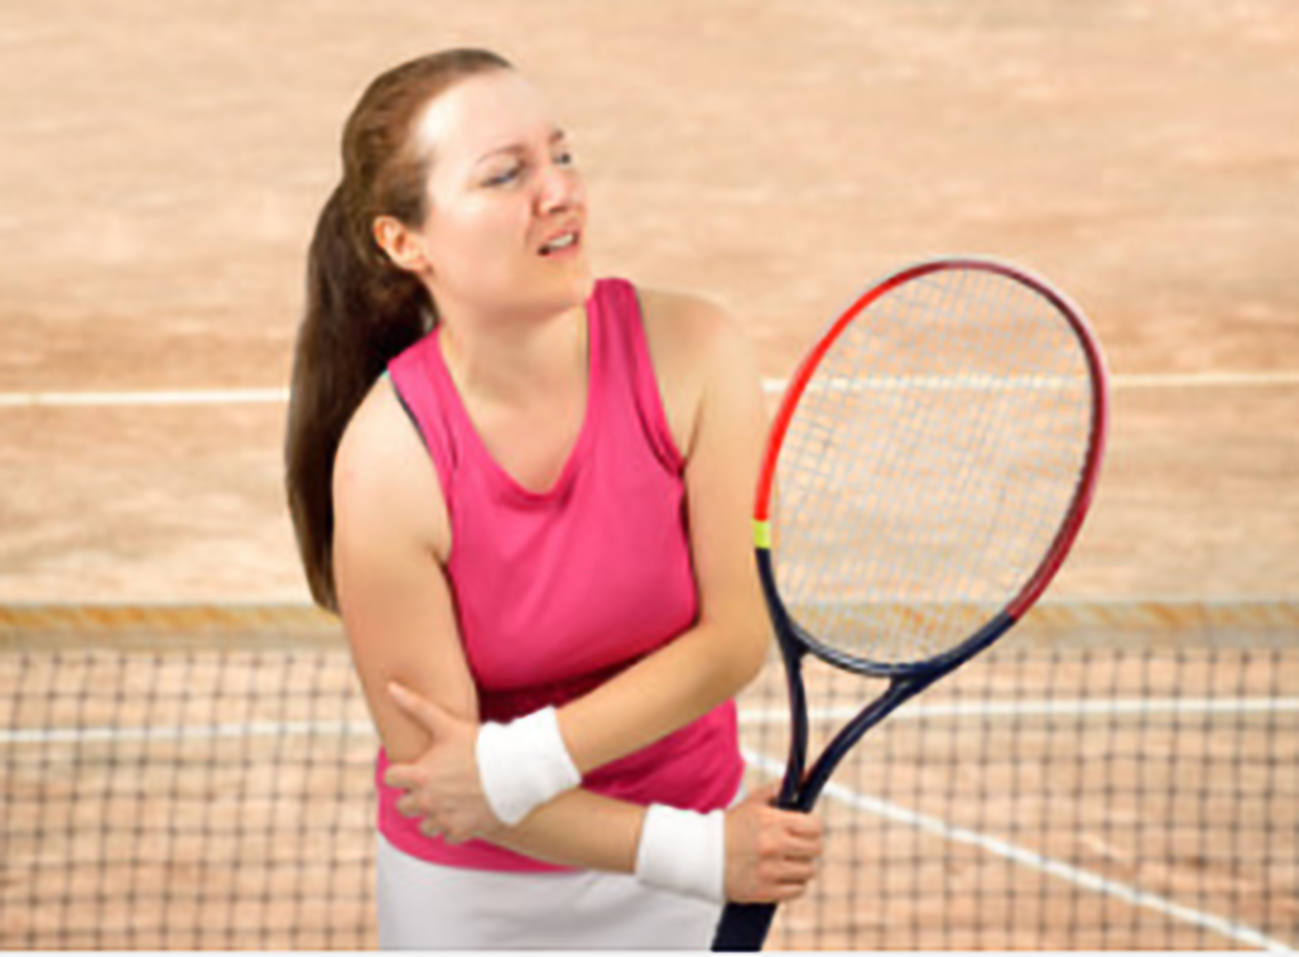 All you need to know about tennis elbow racquets (& Reviews of the Top 6)